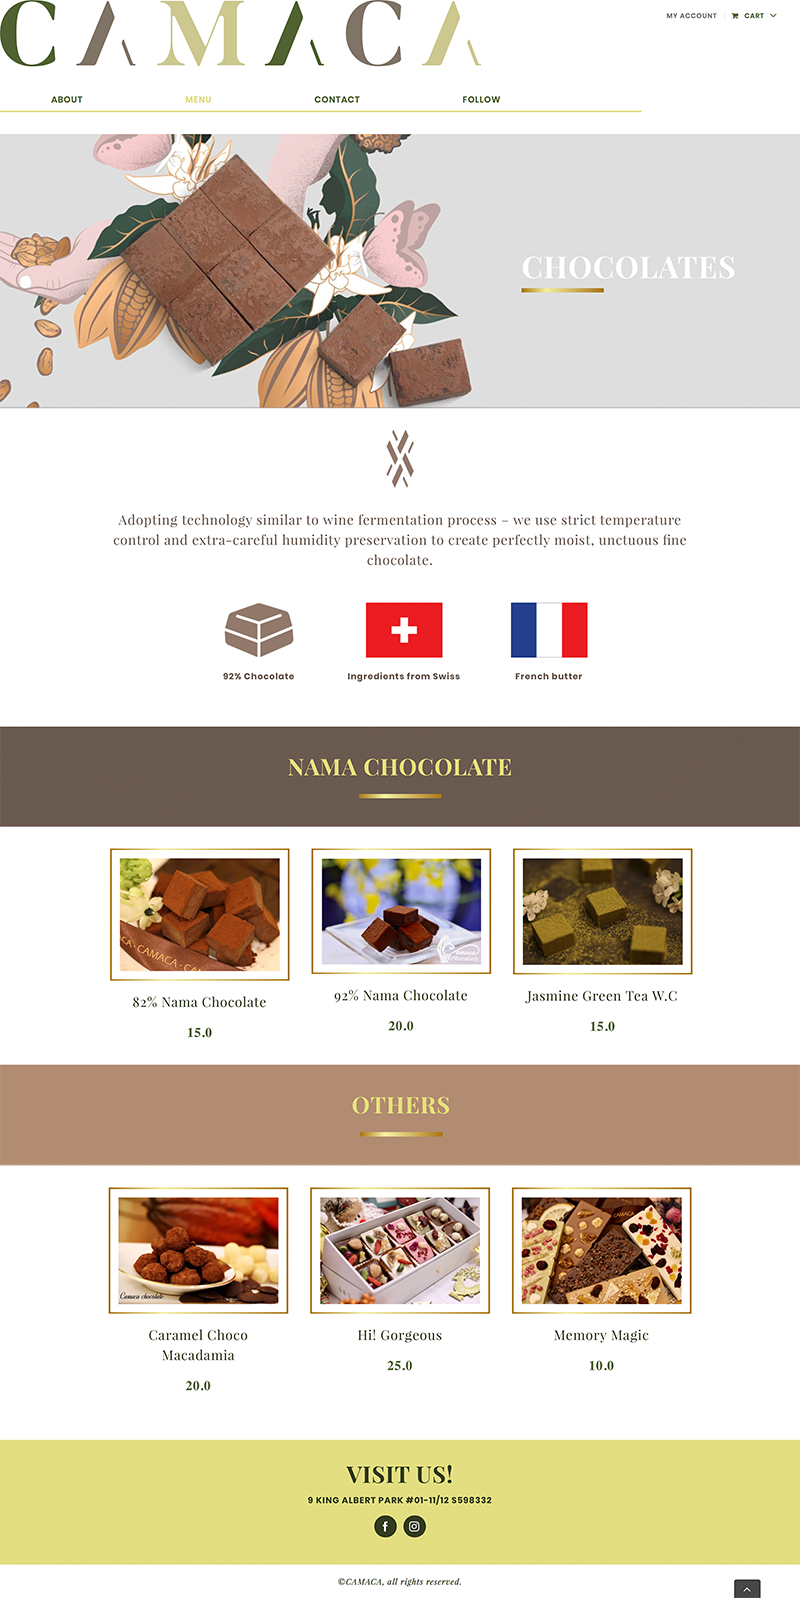 Camaca_Web Design 2018v3-chocolates.png